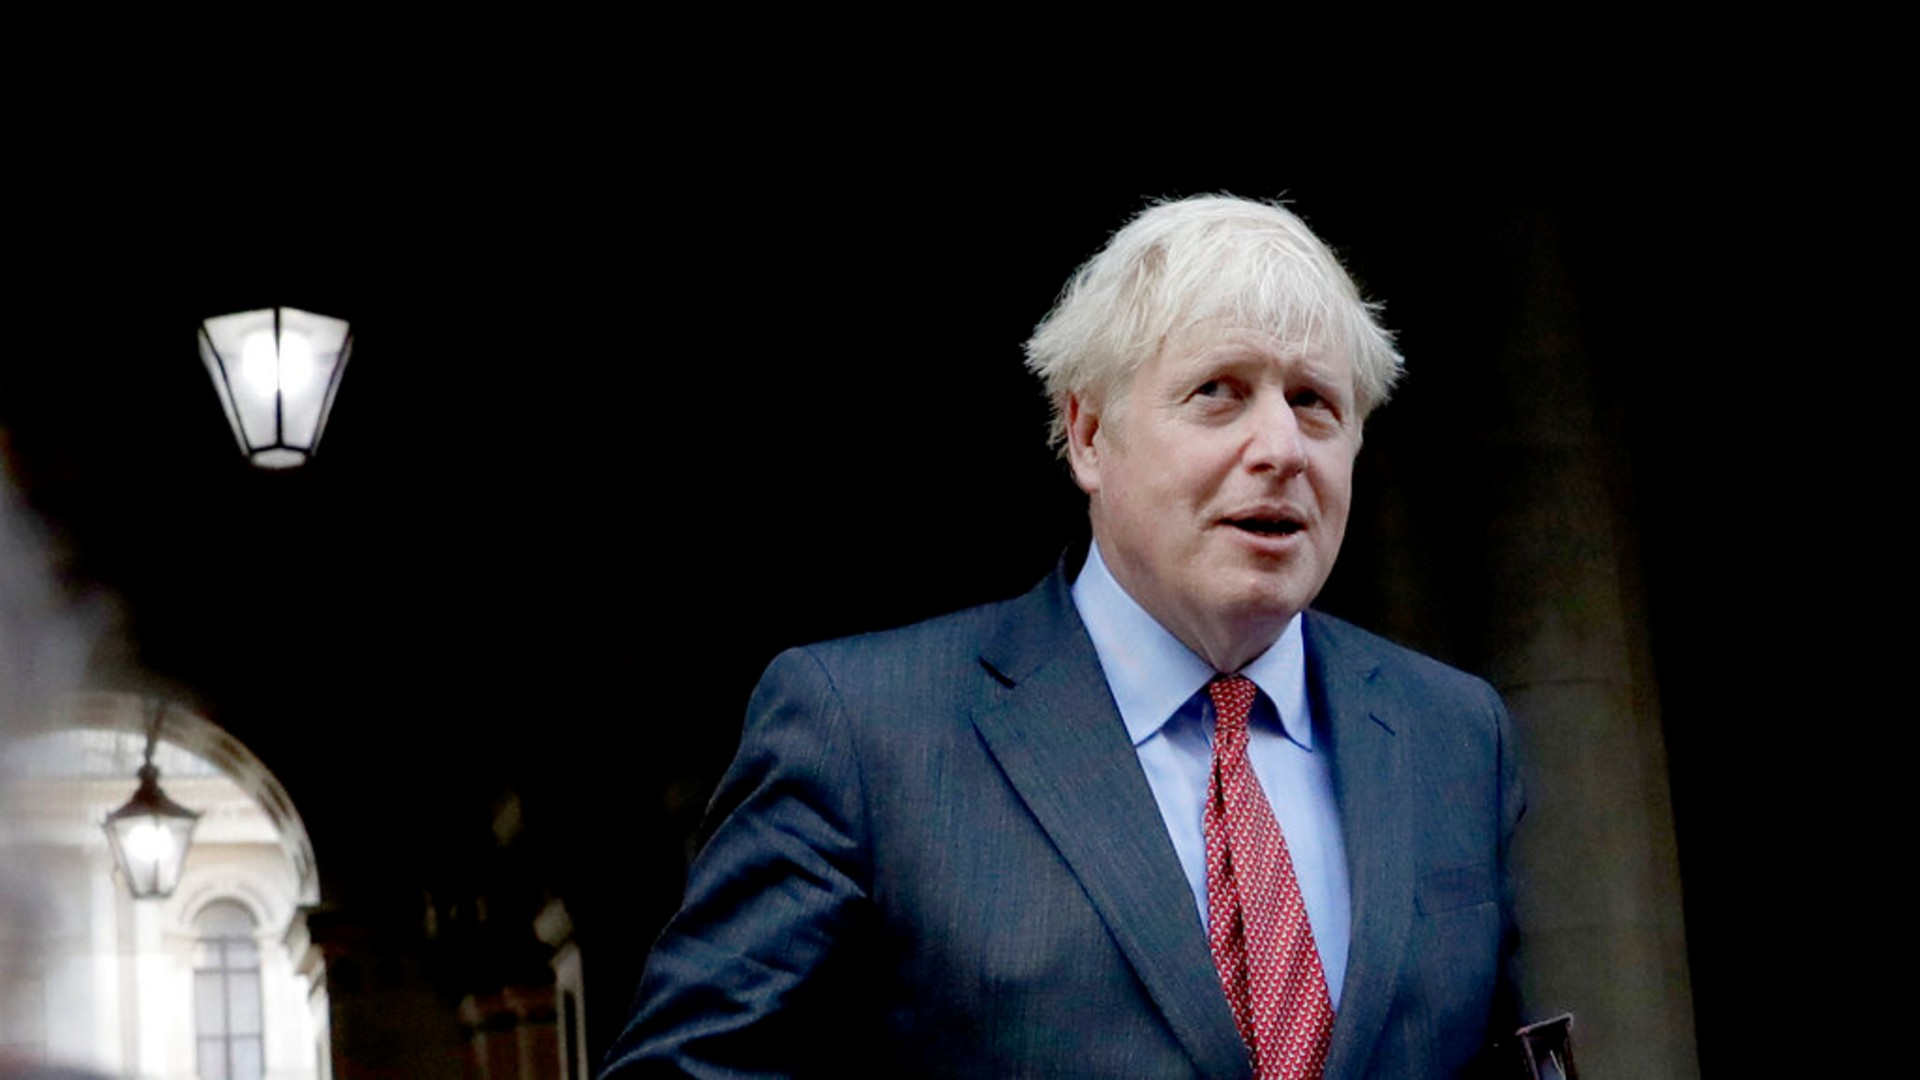 British Prime Minister Boris Johnson walks back into Downing Street after attending a cabinet meeting at the Foreign and Commonwealth Office in London, Tuesday, Sept. 22, 2020. (AP Photo/Matt Dunham)